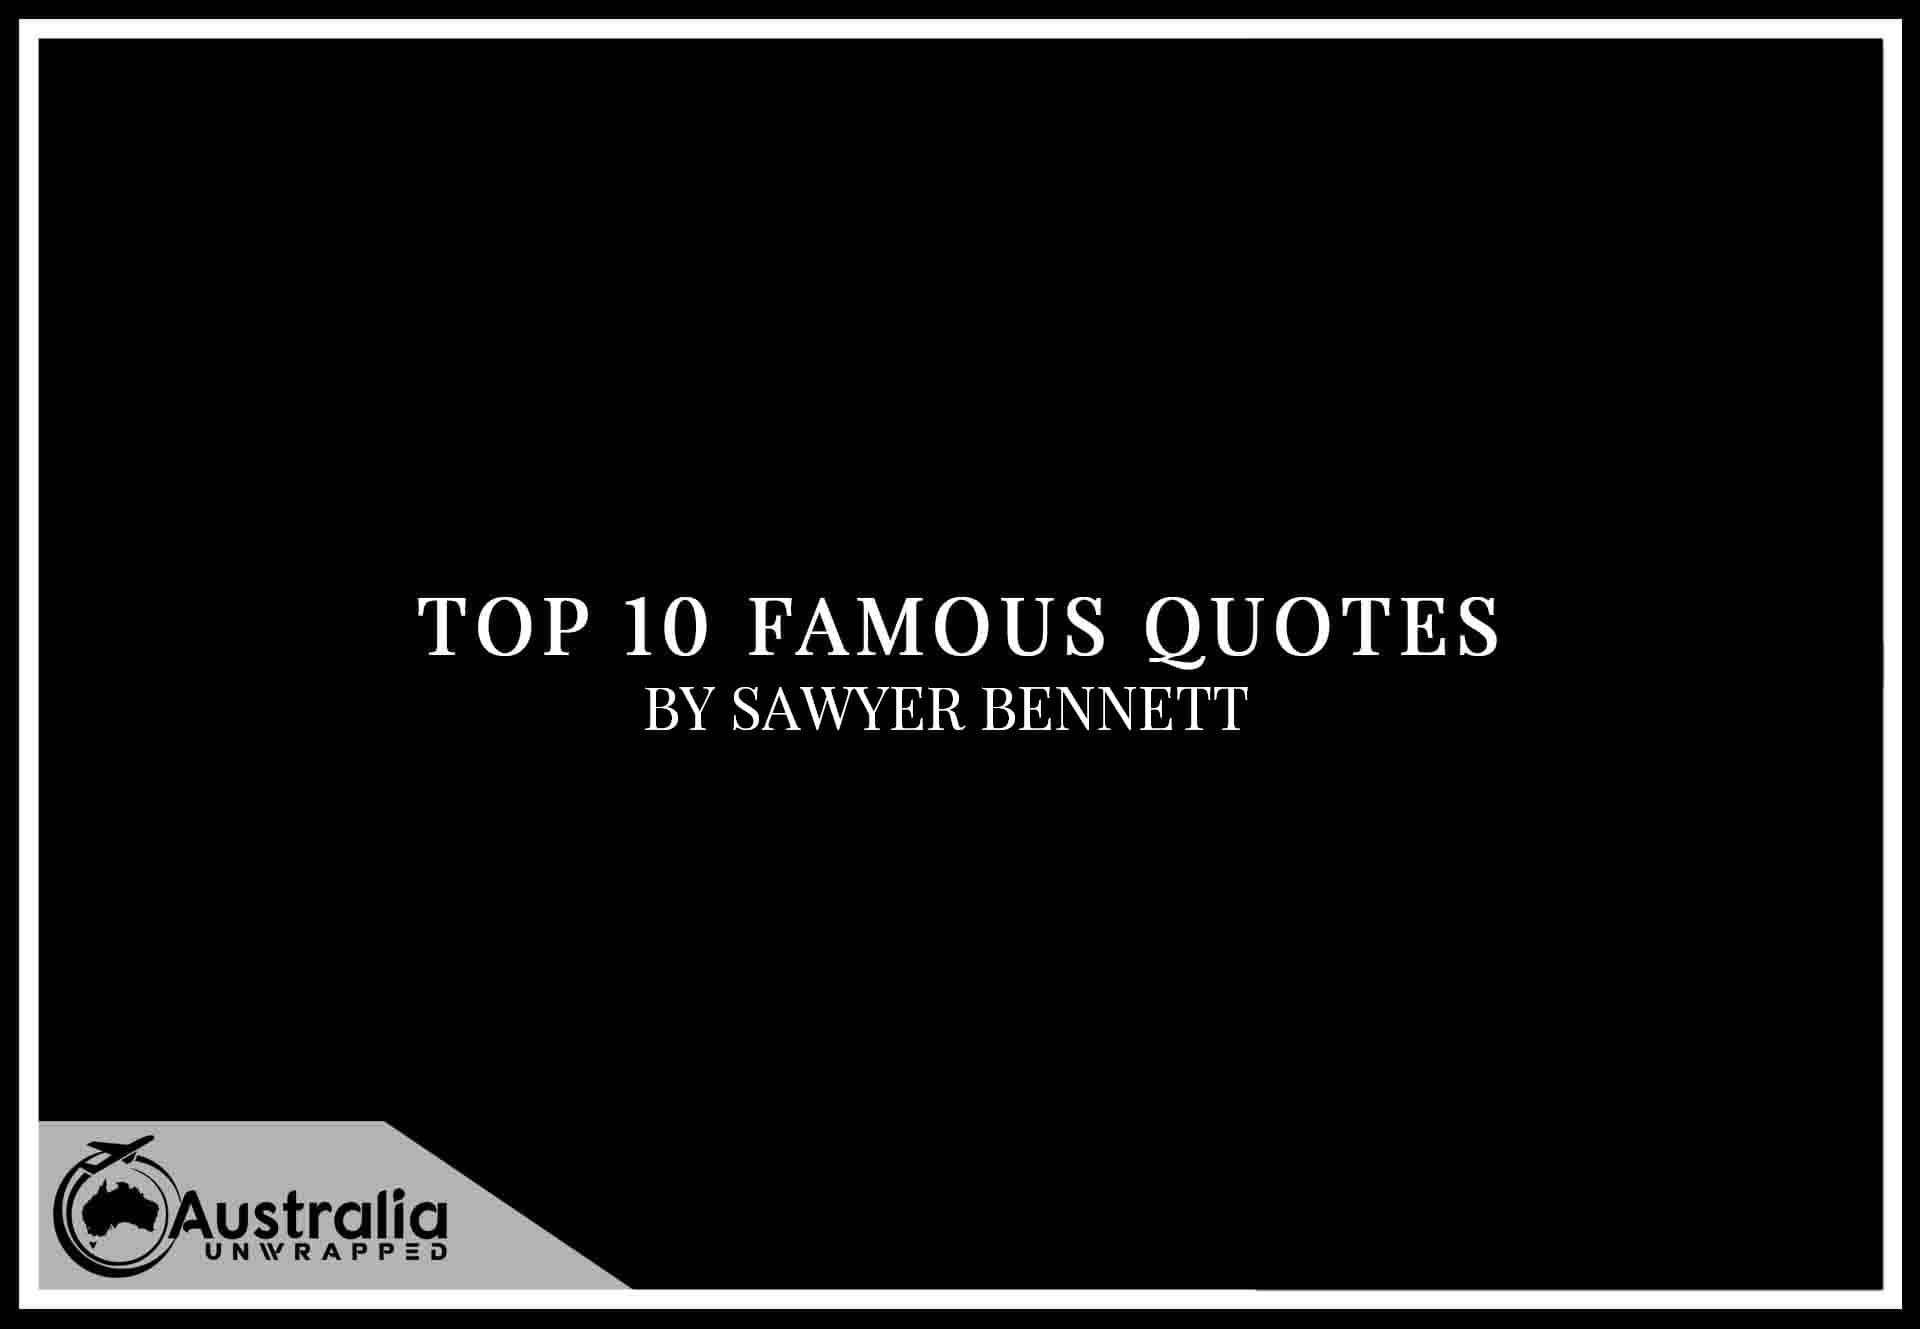 Top 10 Famous Quotes by Author Sawyer Bennett